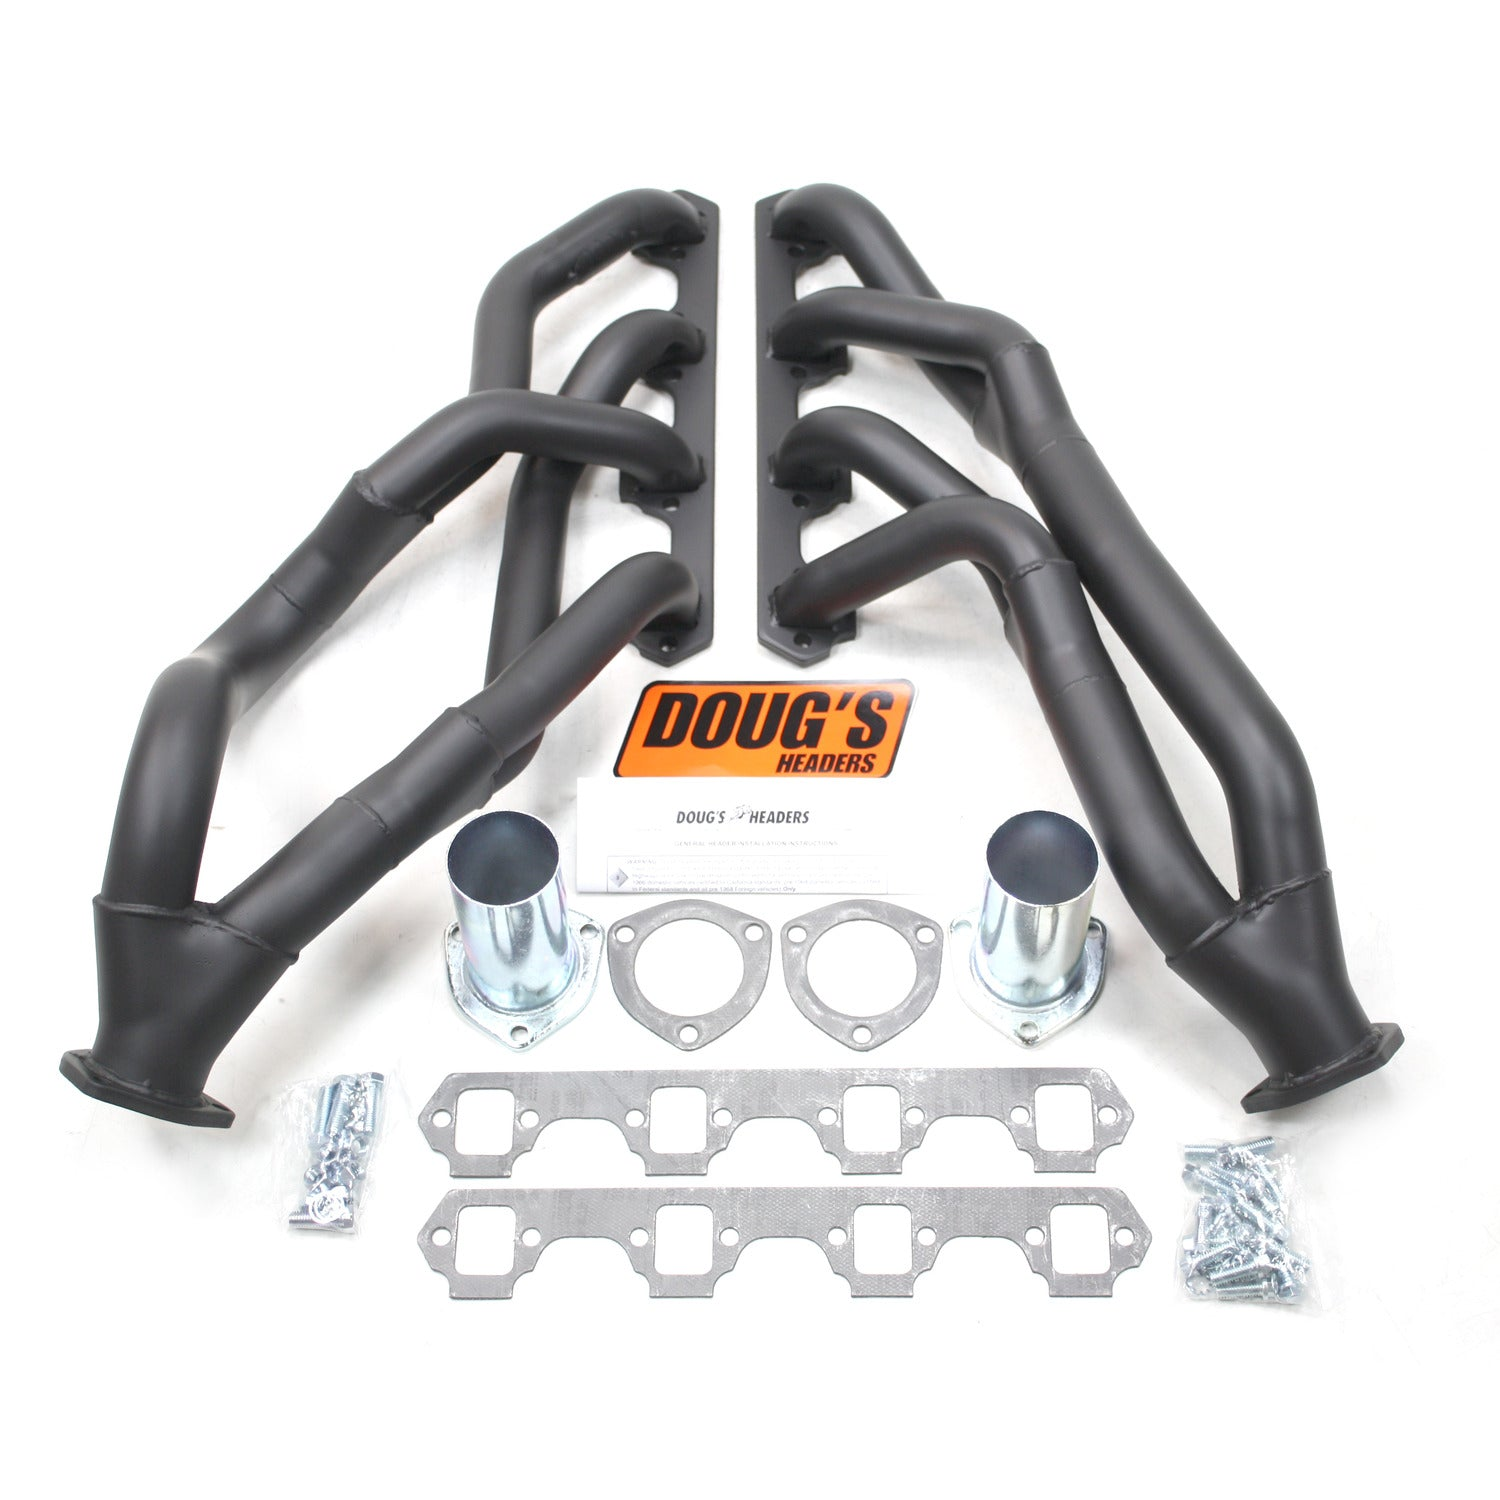 "Doug's Headers D690YS-B 1 5/8"" Tri-Y Header Ford Mustang Small Block Ford 64-70 Hi-Temp Black Coating"